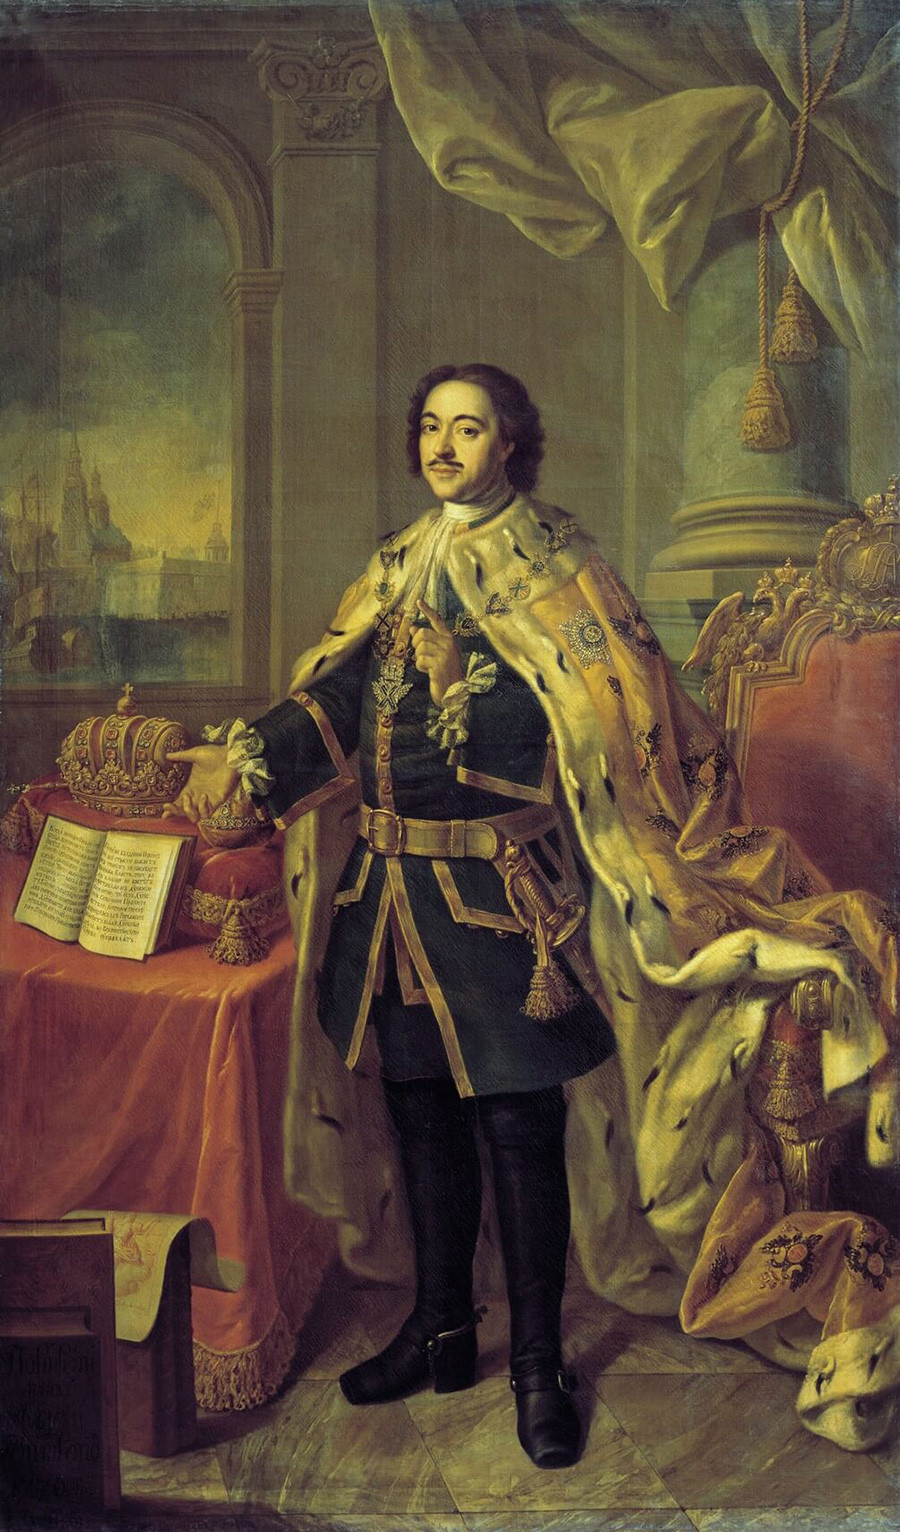 Peter the Great with the Imperial regalia, by A. Antropov, 1770